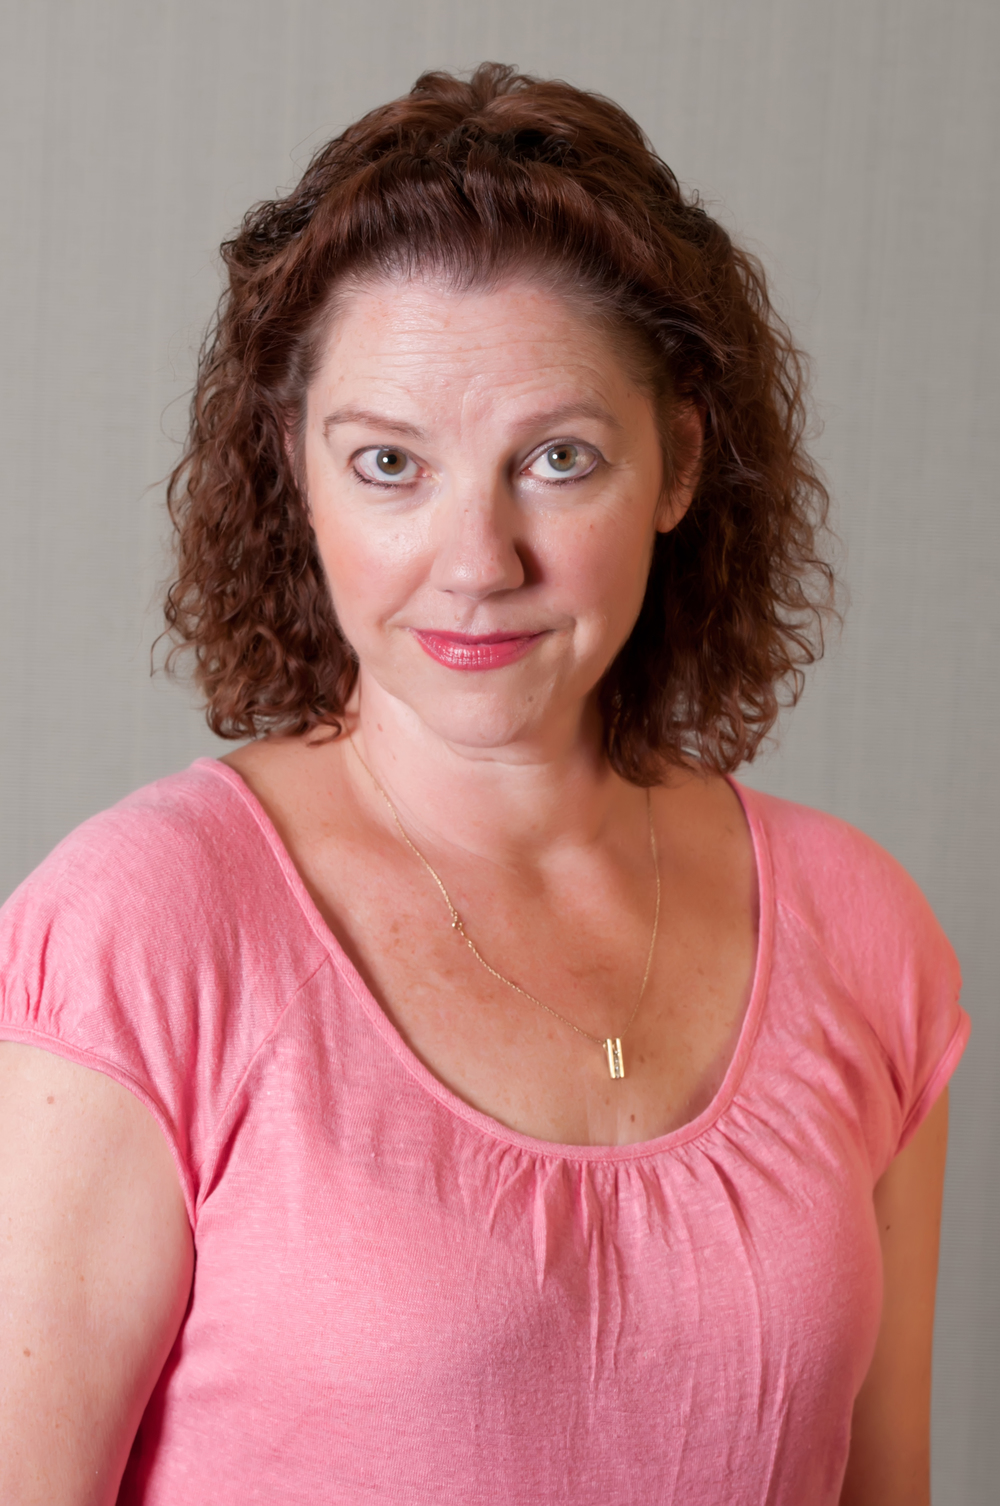 Amy Drtina is the theater teacher at Smithton Middle School. ADrtina@CPSk12.org 573-214-3260